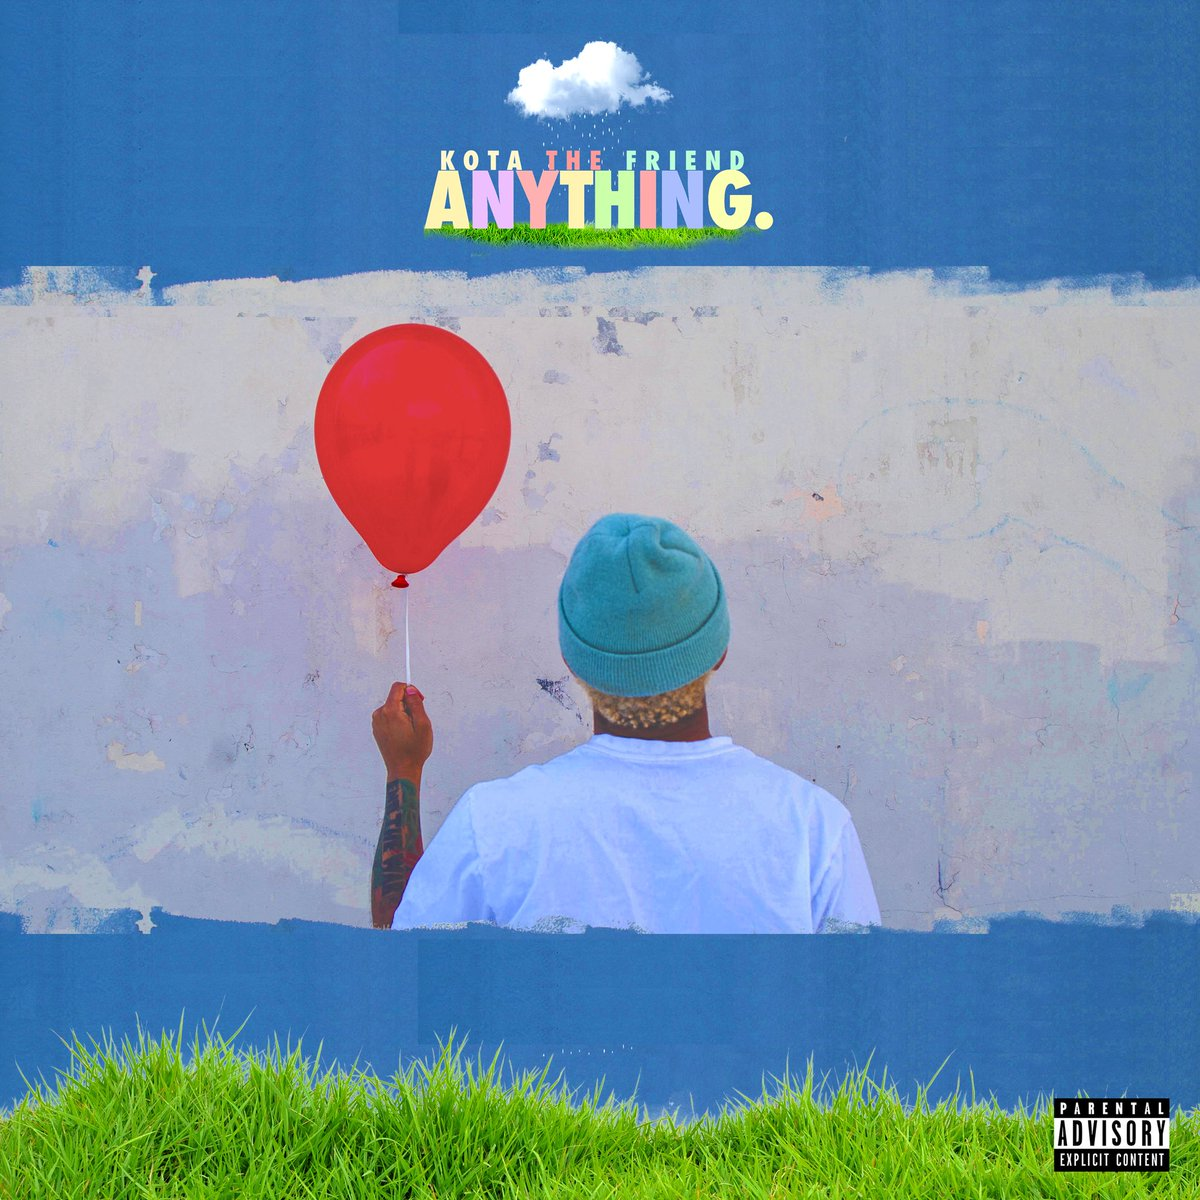 « ANYTHING EP » DE KOTA THE FRIEND : LA FORCE TRANQUILLE